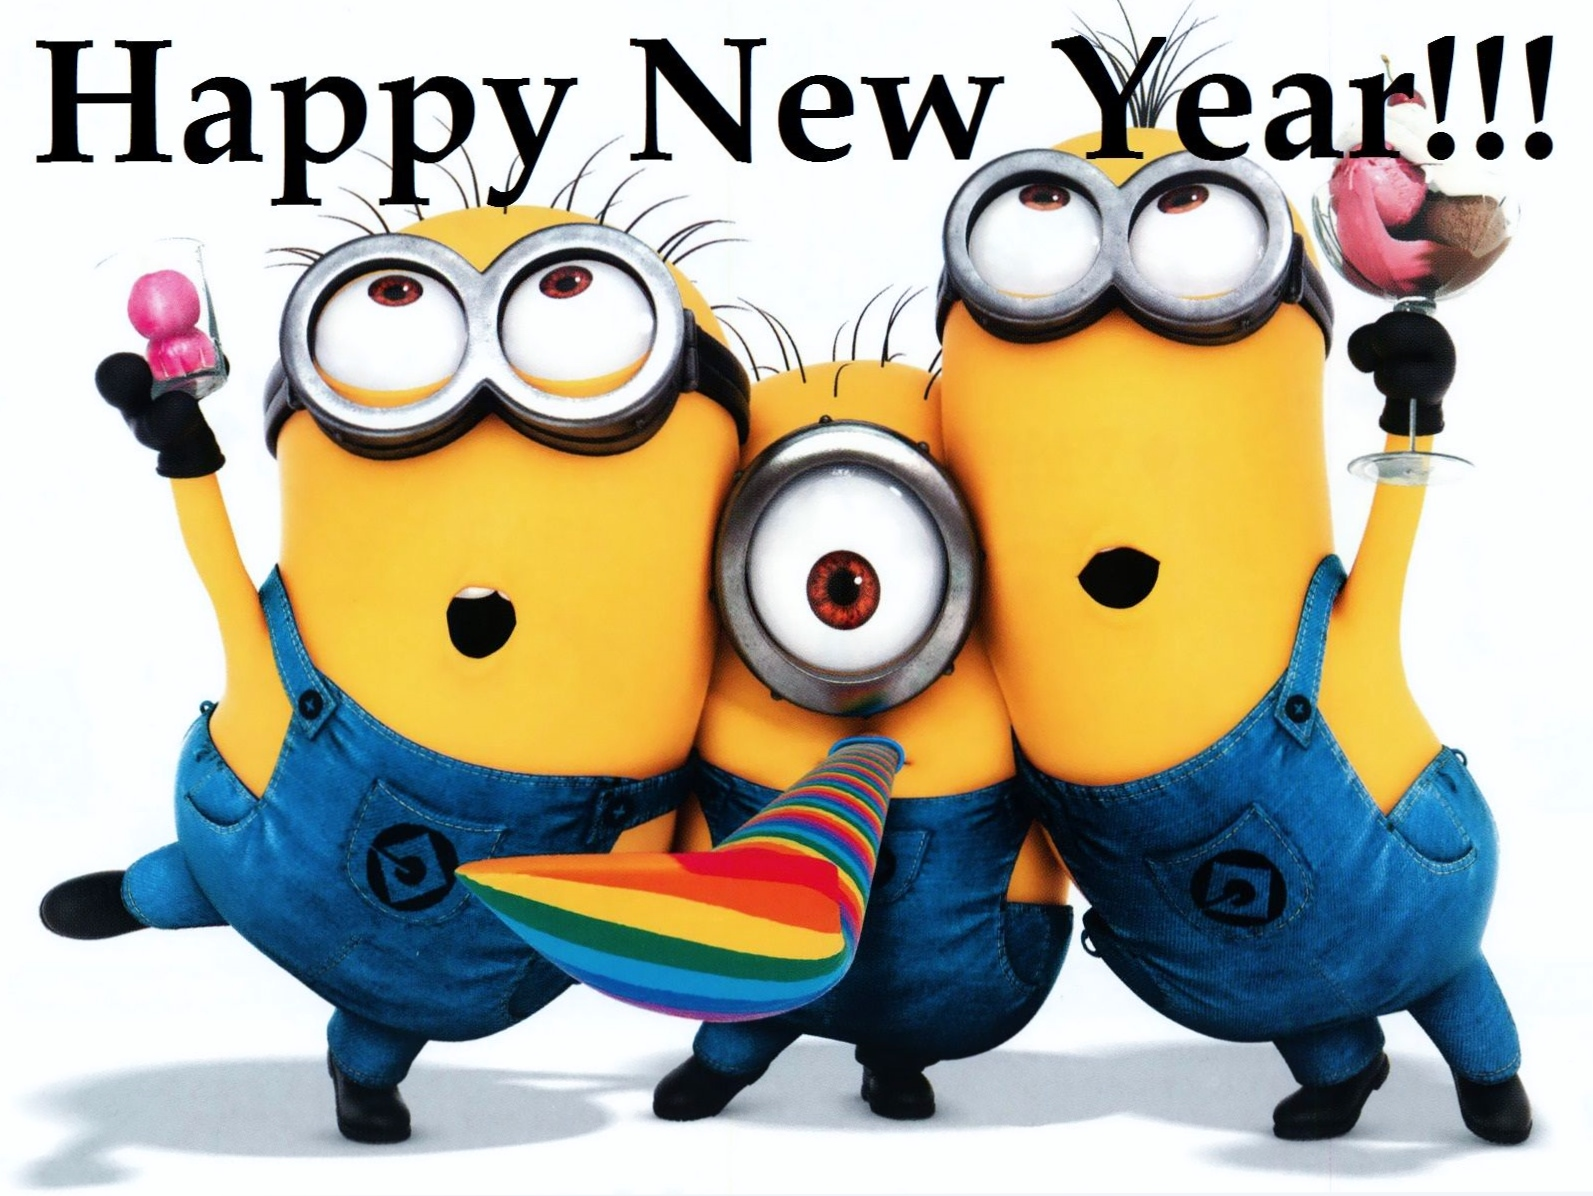 Crazy-Minions-wishing-a-happy-new-year